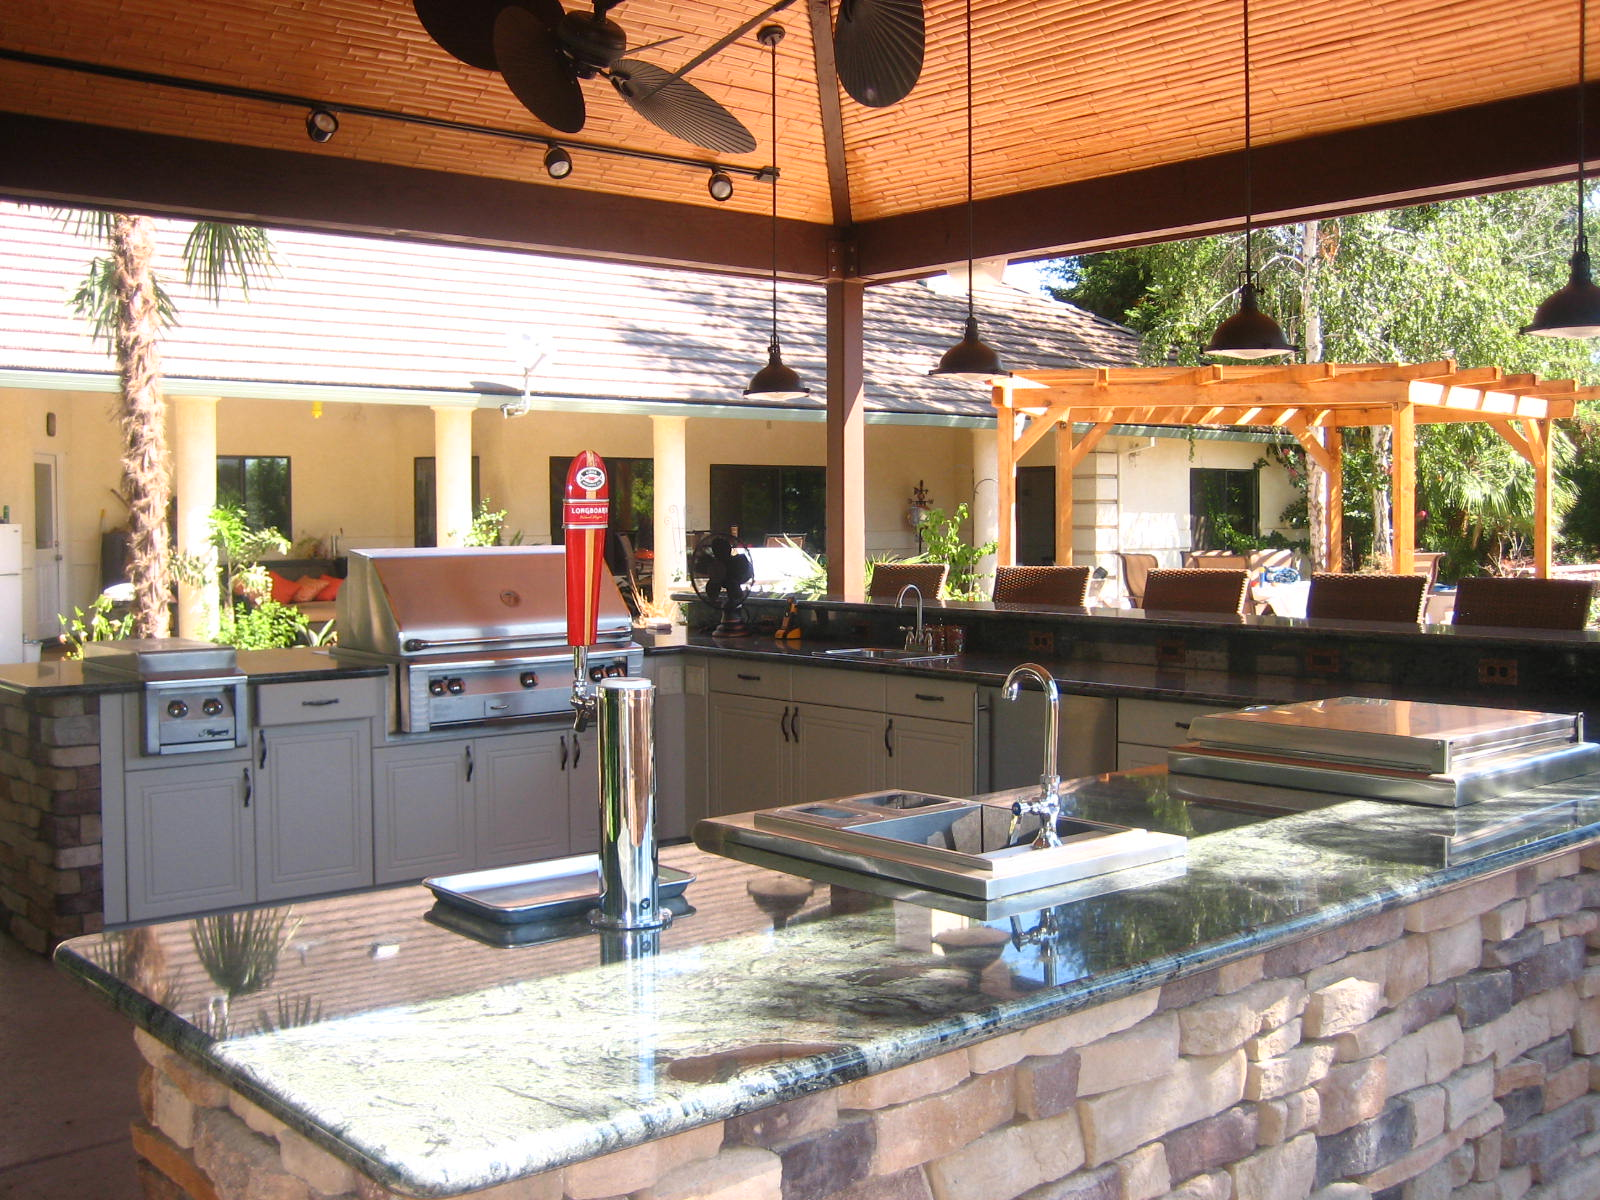 Naturekast Outdoor Summer Kitchen Cabinet Gallery: 3 Design Ideas For An Outdoor Kitchen